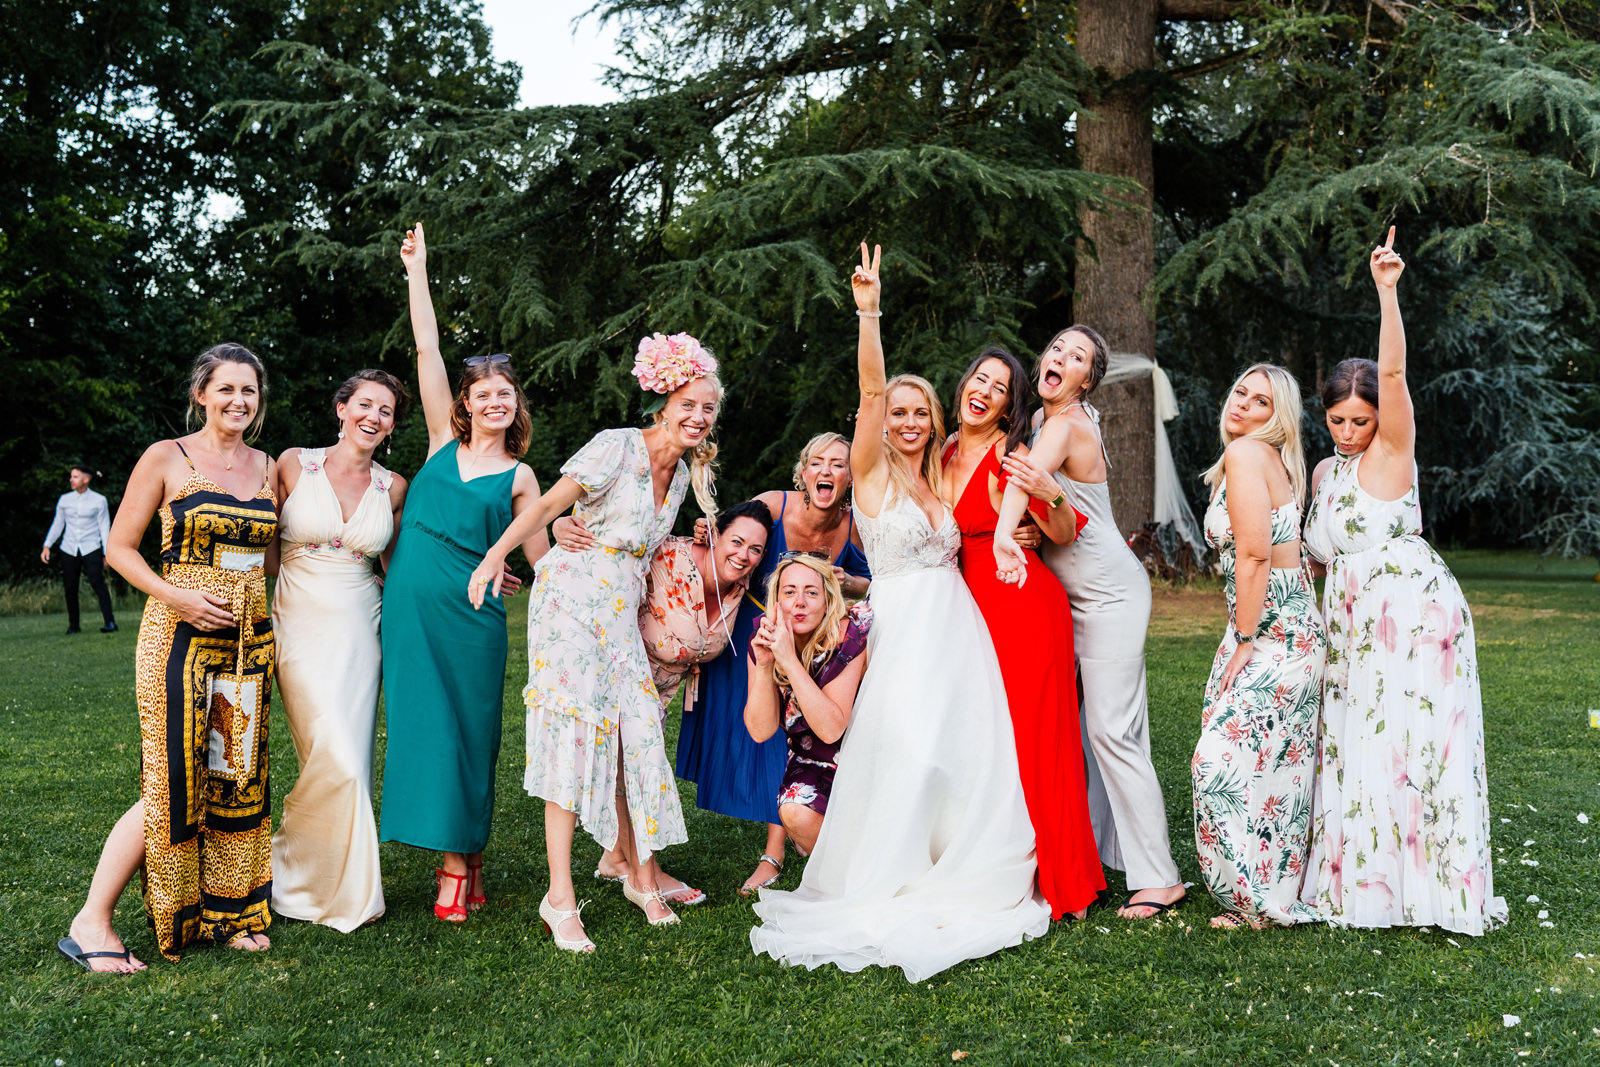 brides friends informal group photo